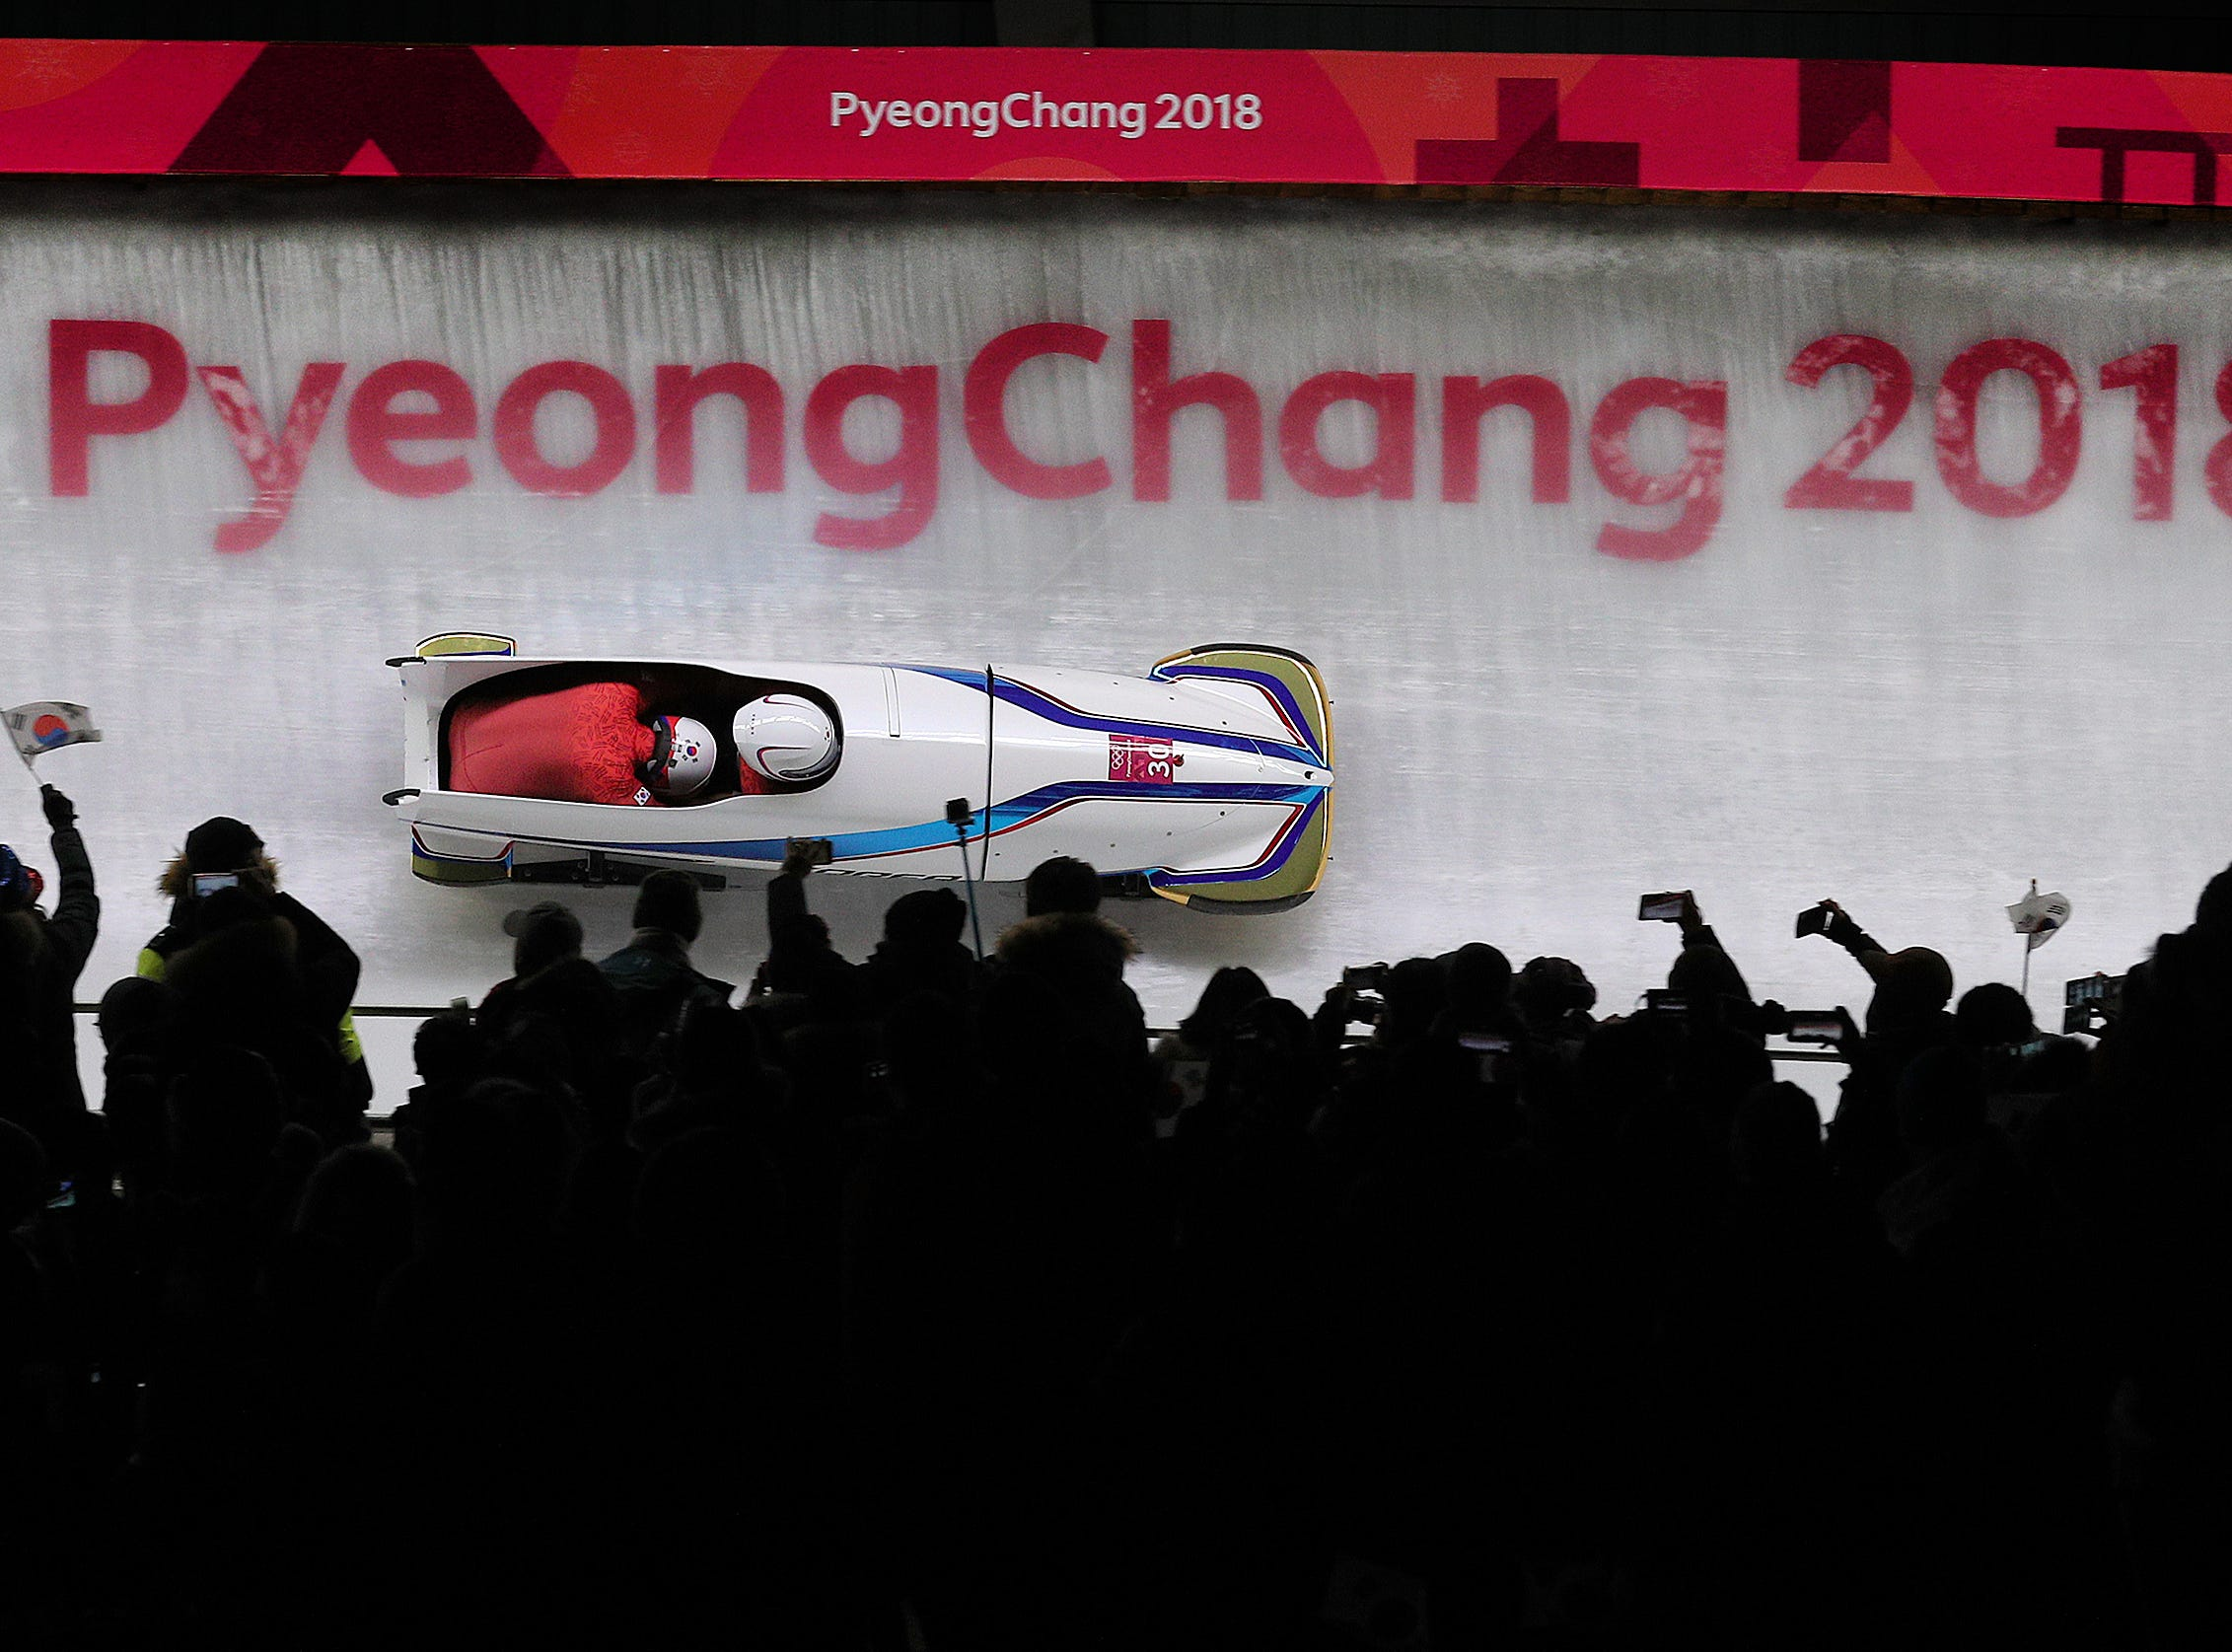 Feb 19, 2018; Pyeongchang, South Korea; Republic of Korea's Won Yunjong and Seo Youngwoo fly through turn 14 during the 2-Man Bobsleigh finals at the Pyeongchang 2018 Olympic Winter Games at Olympic Sliding Centre. Mandatory Credit: Matt Kryger-USA TODAY Sports